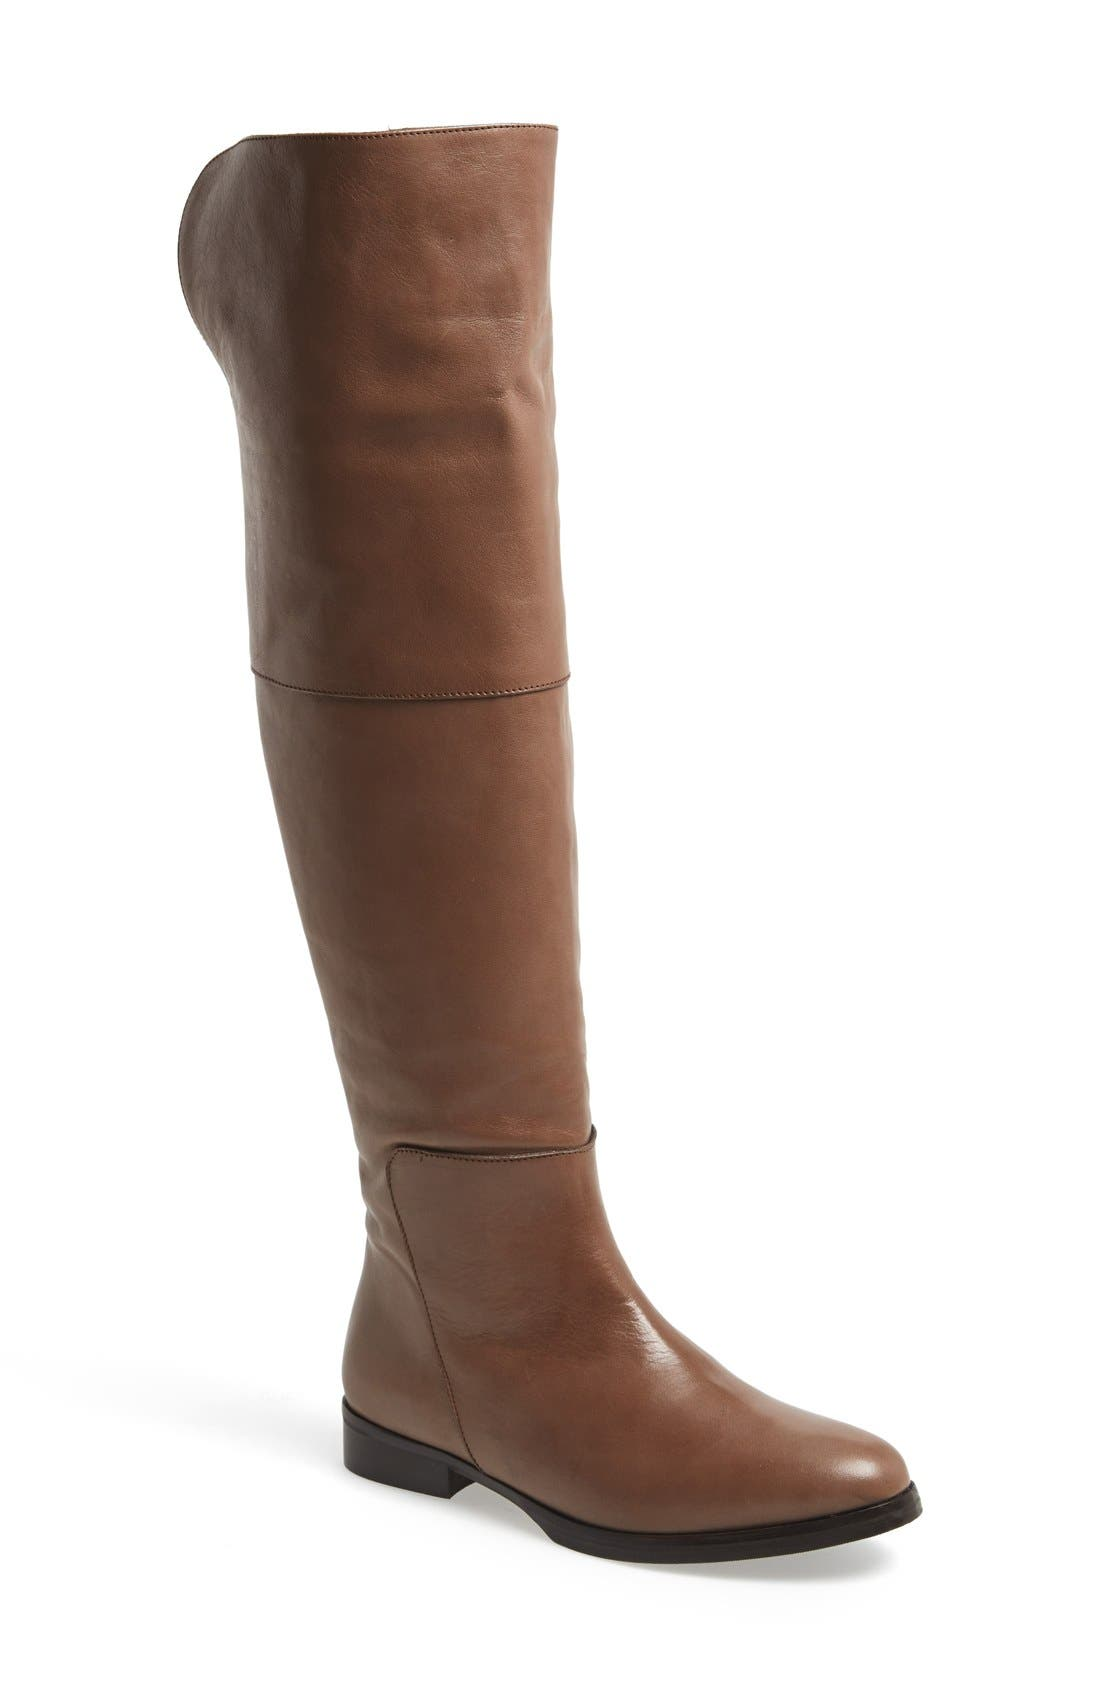 Alternate Image 1 Selected - Charles by Charles David 'Regina' Over-The-Knee Boot (Women)